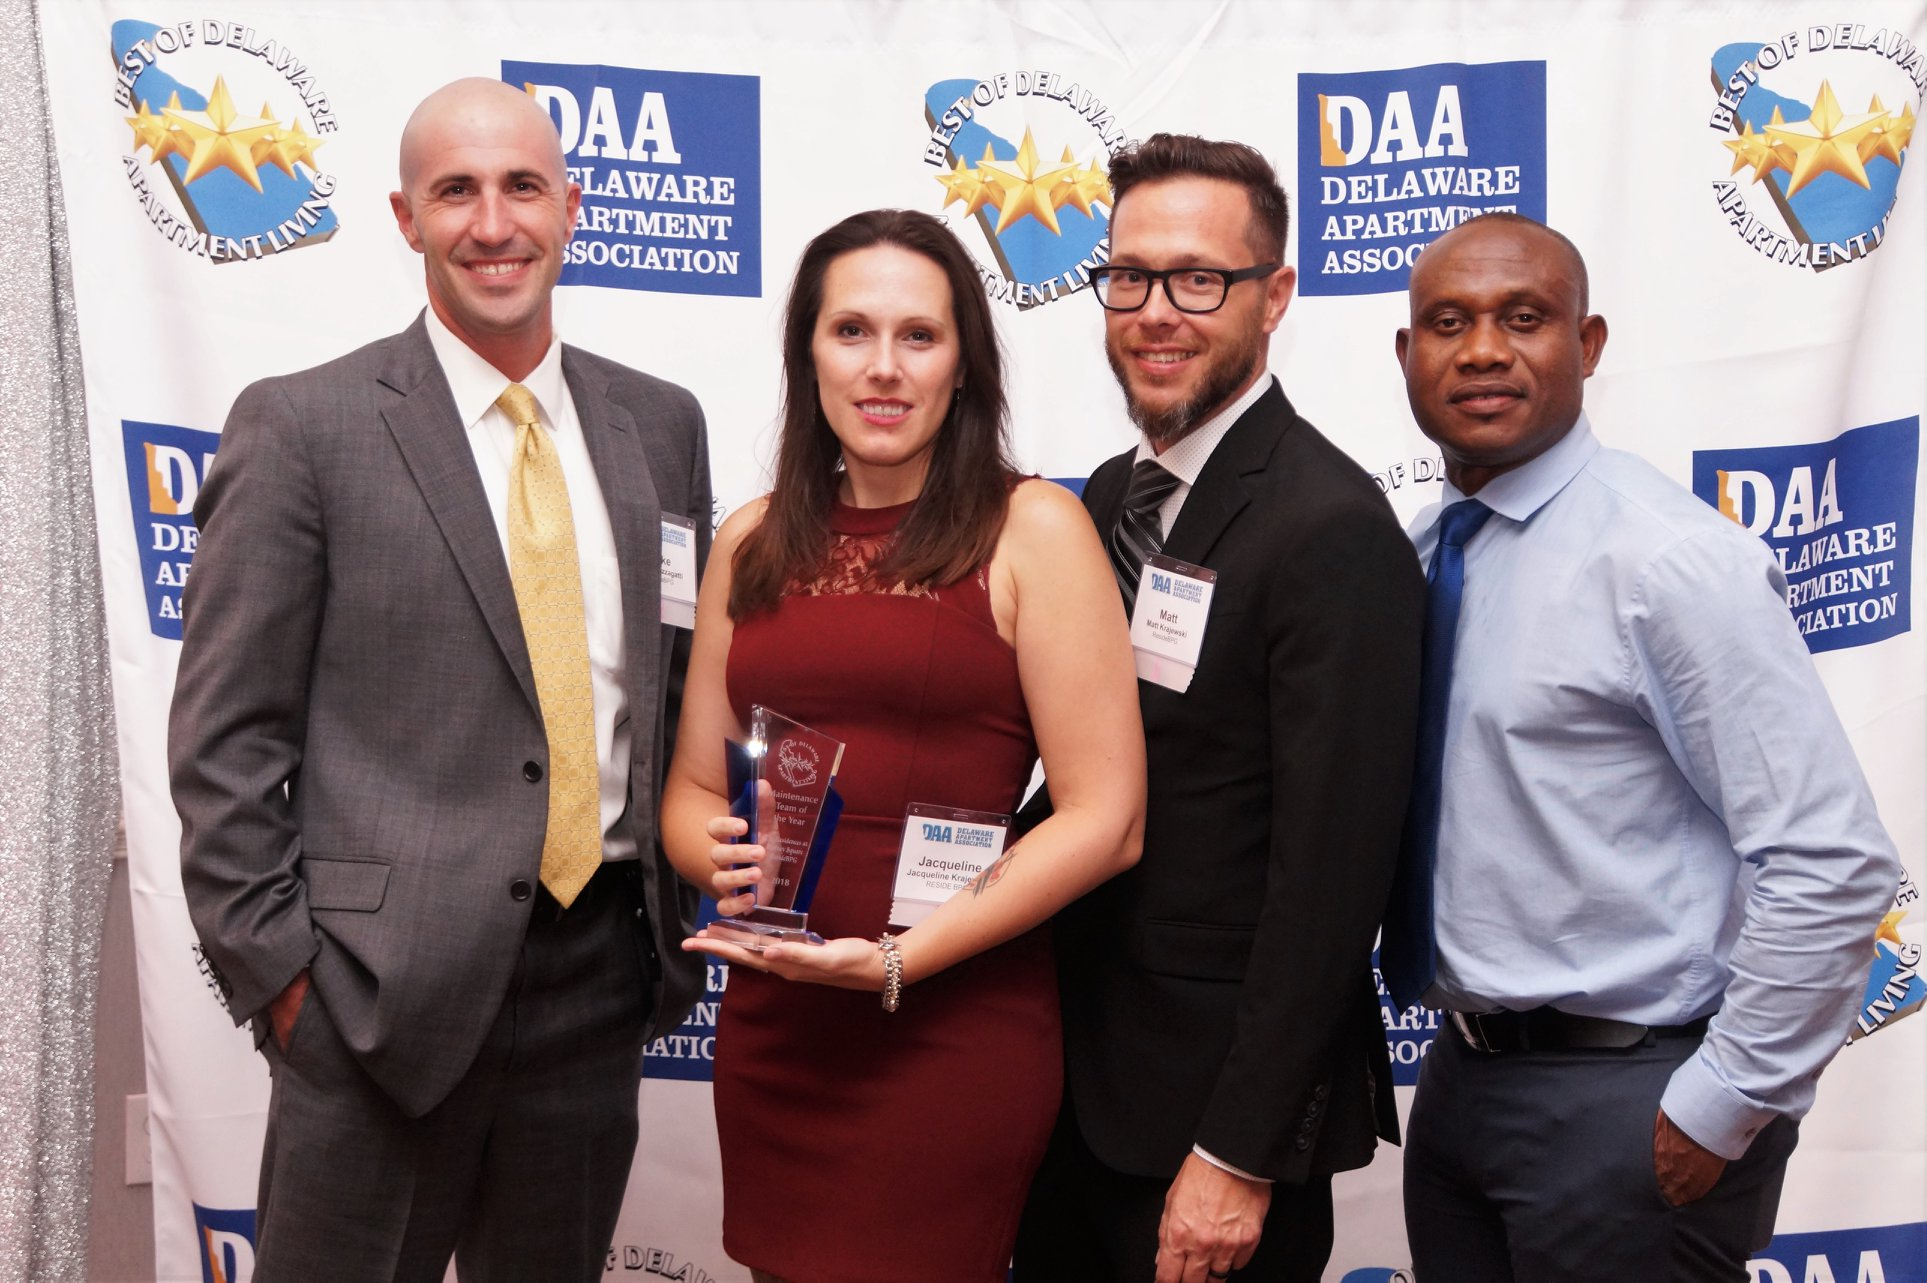 delaware apartment association awards